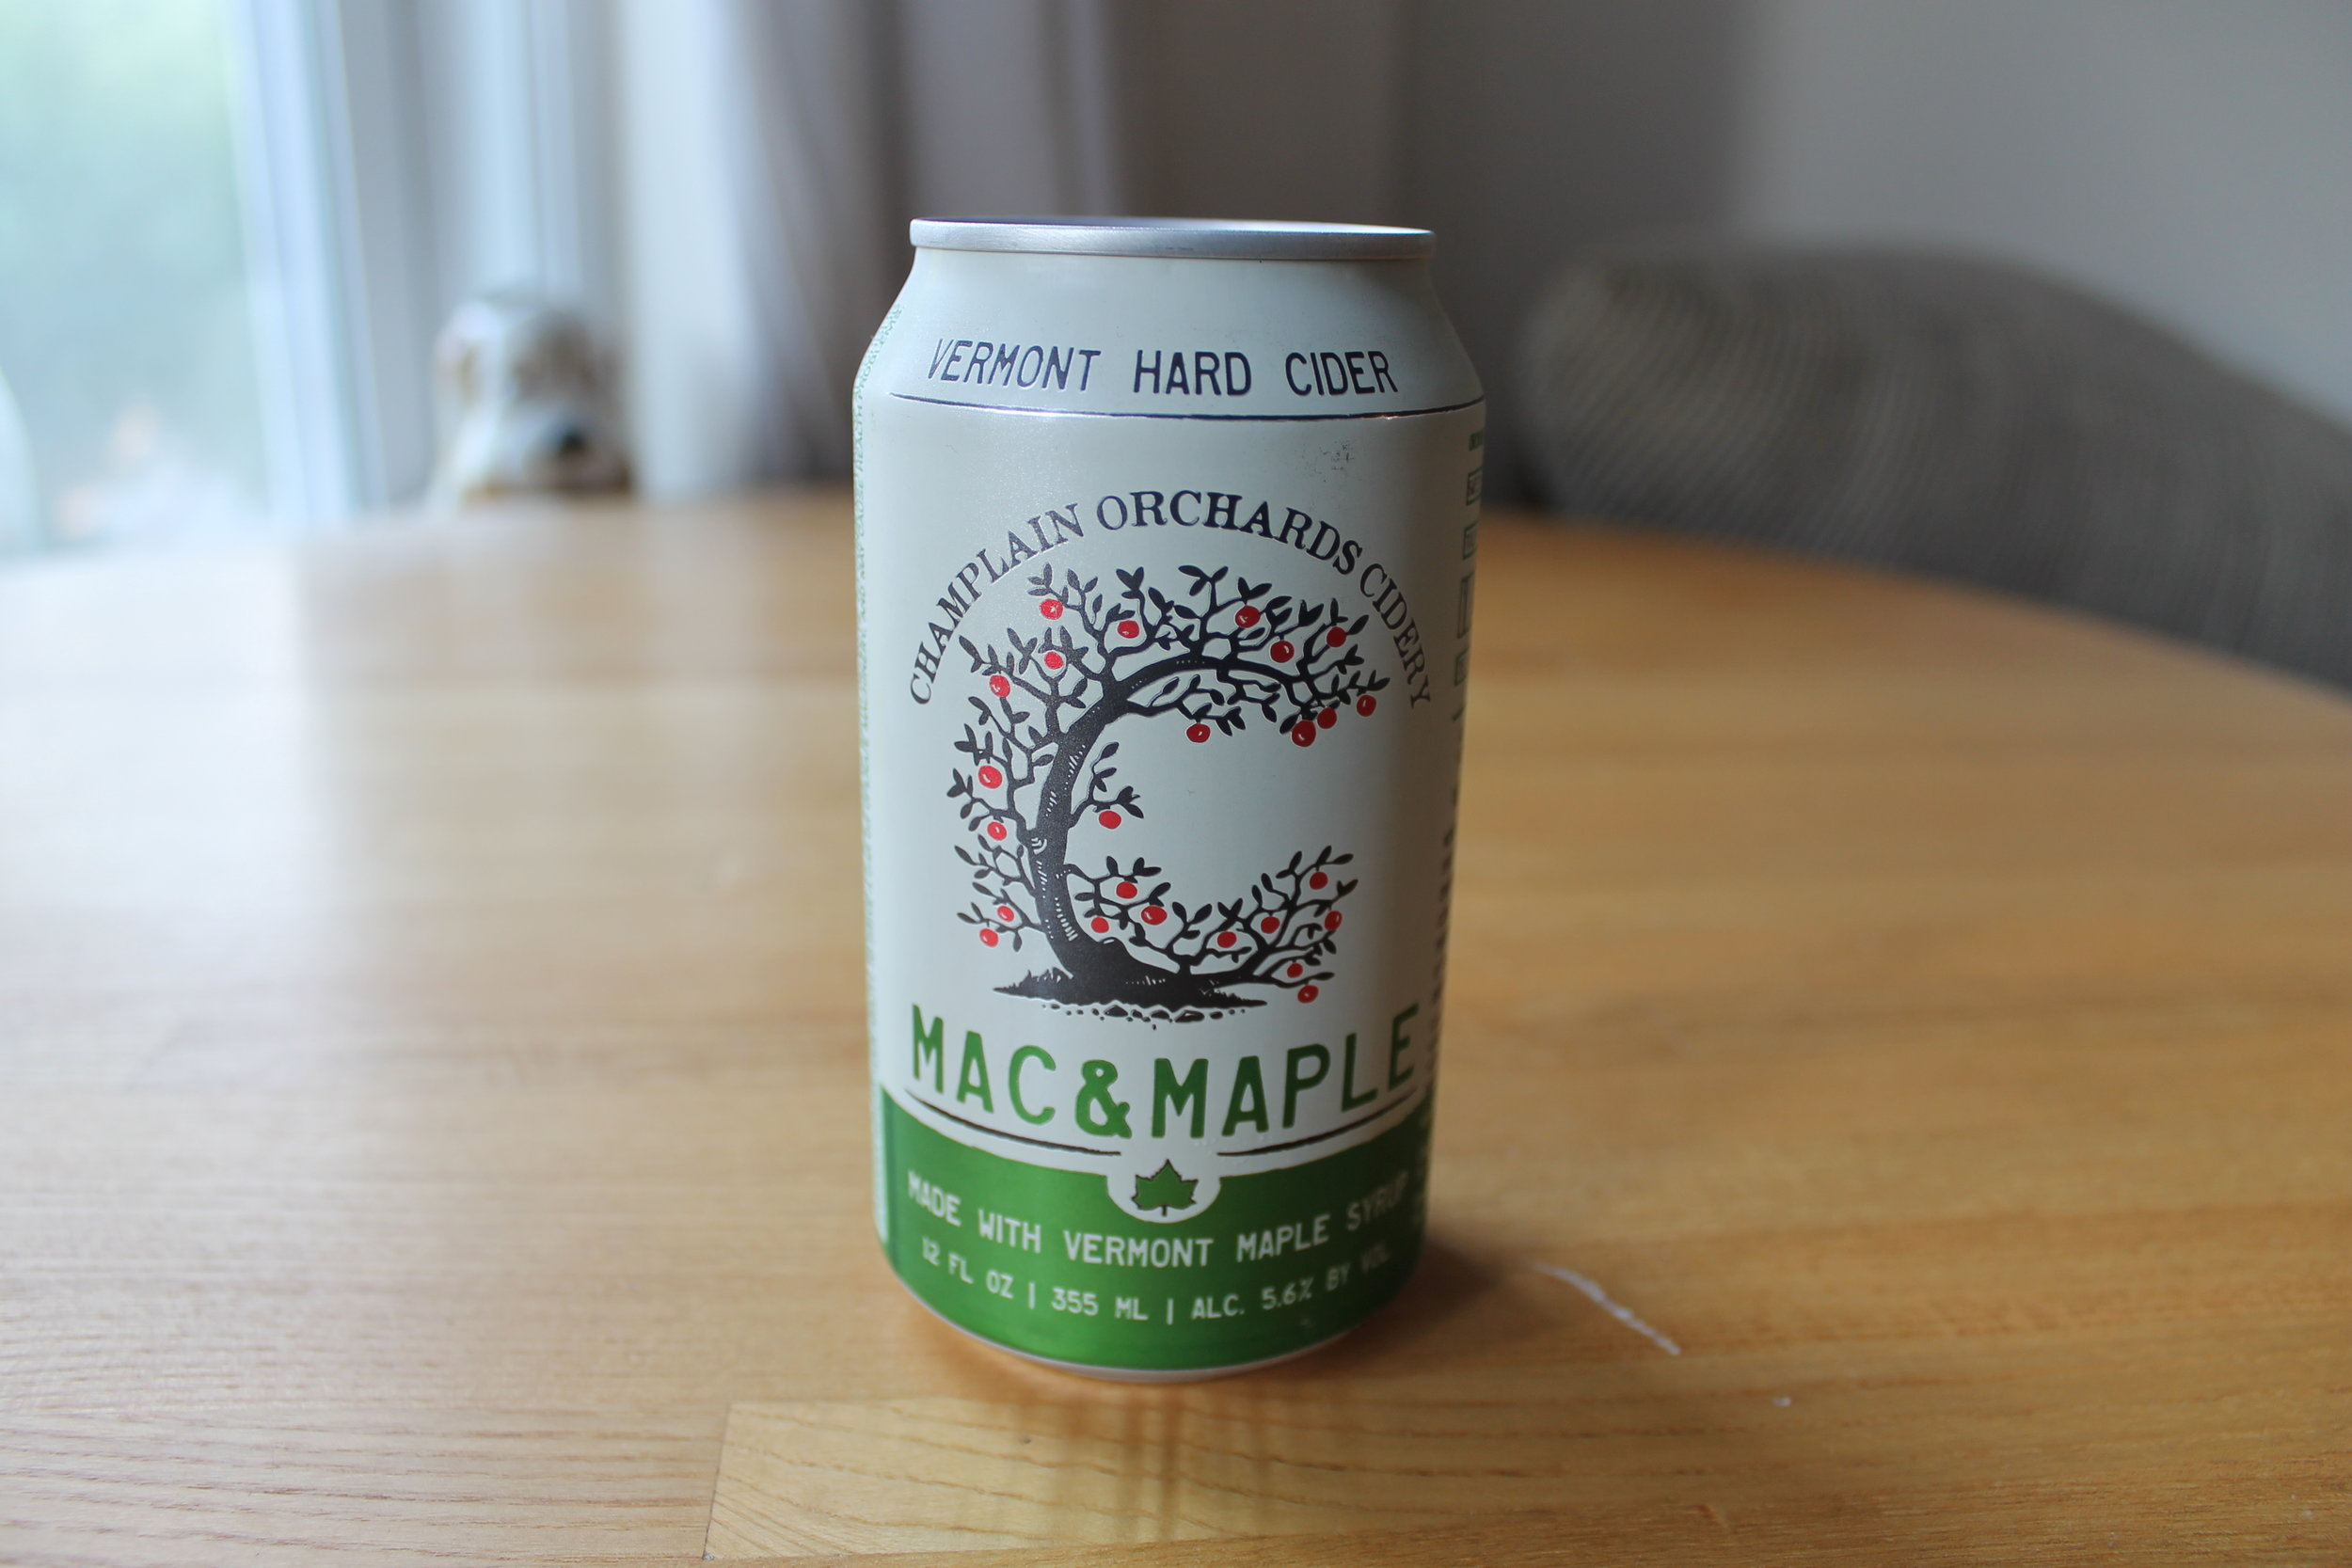 Champlain Orchards Cidery: Mac & Maple